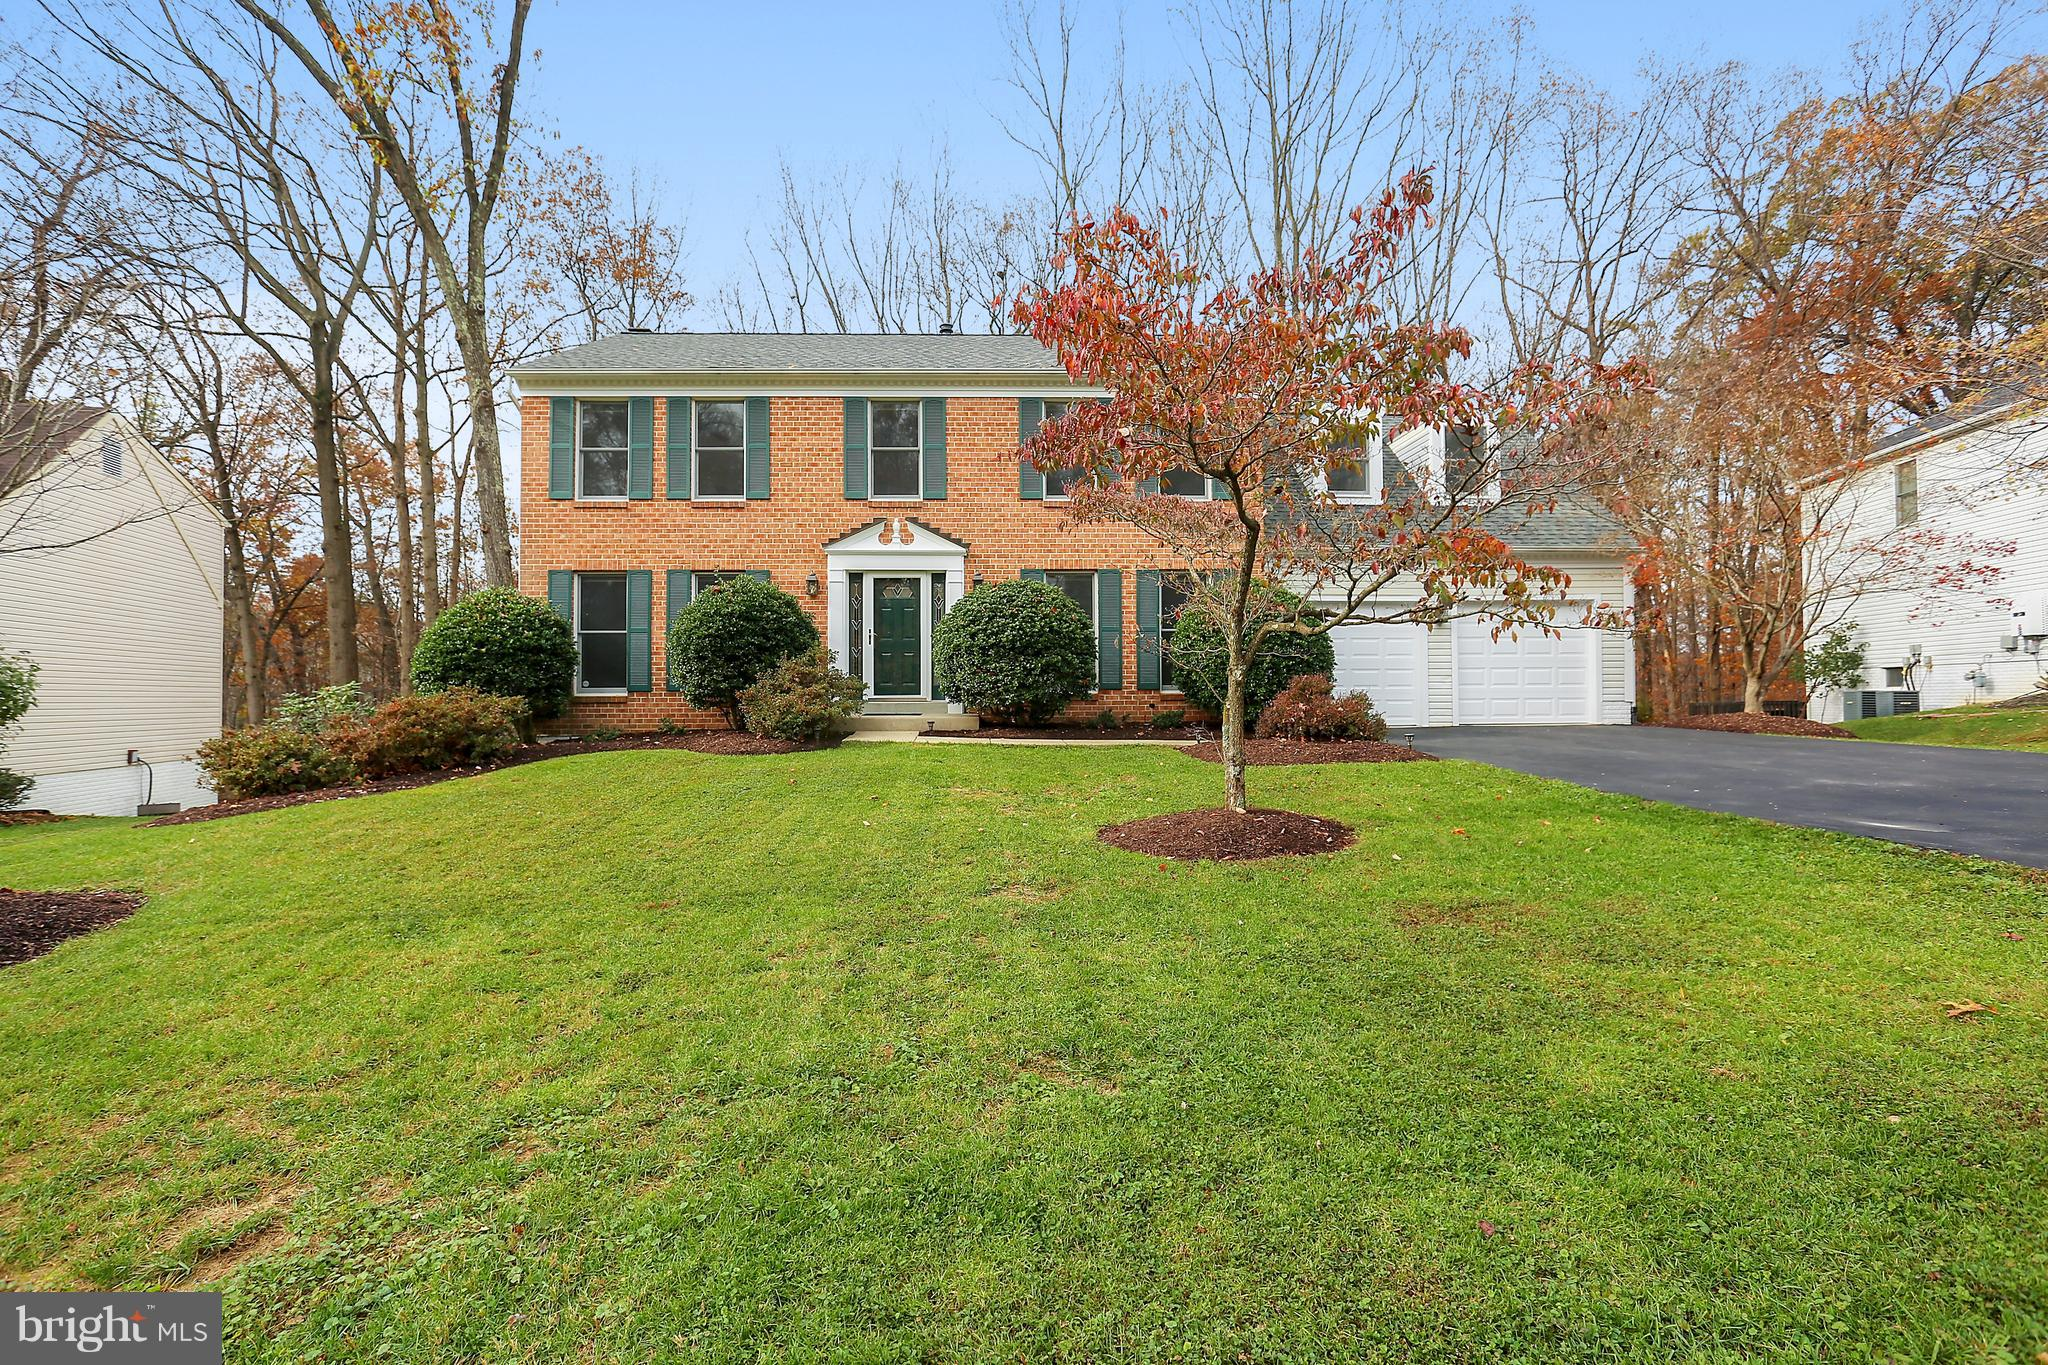 13510 CEDAR CREEK LANE, SILVER SPRING, MD 20904